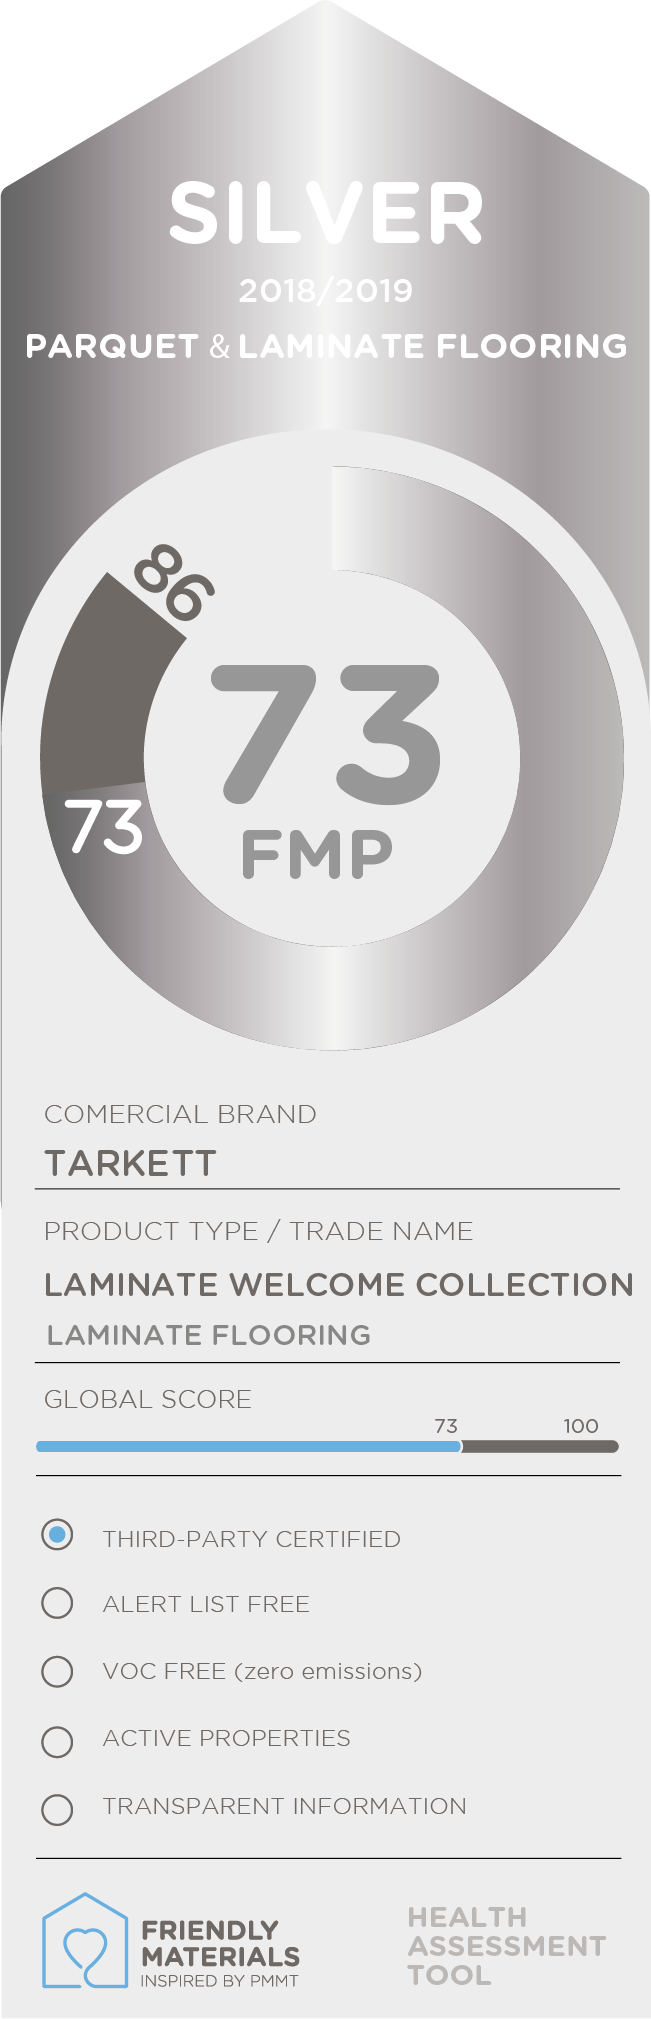 Laminate Welcome Collection  silver 73